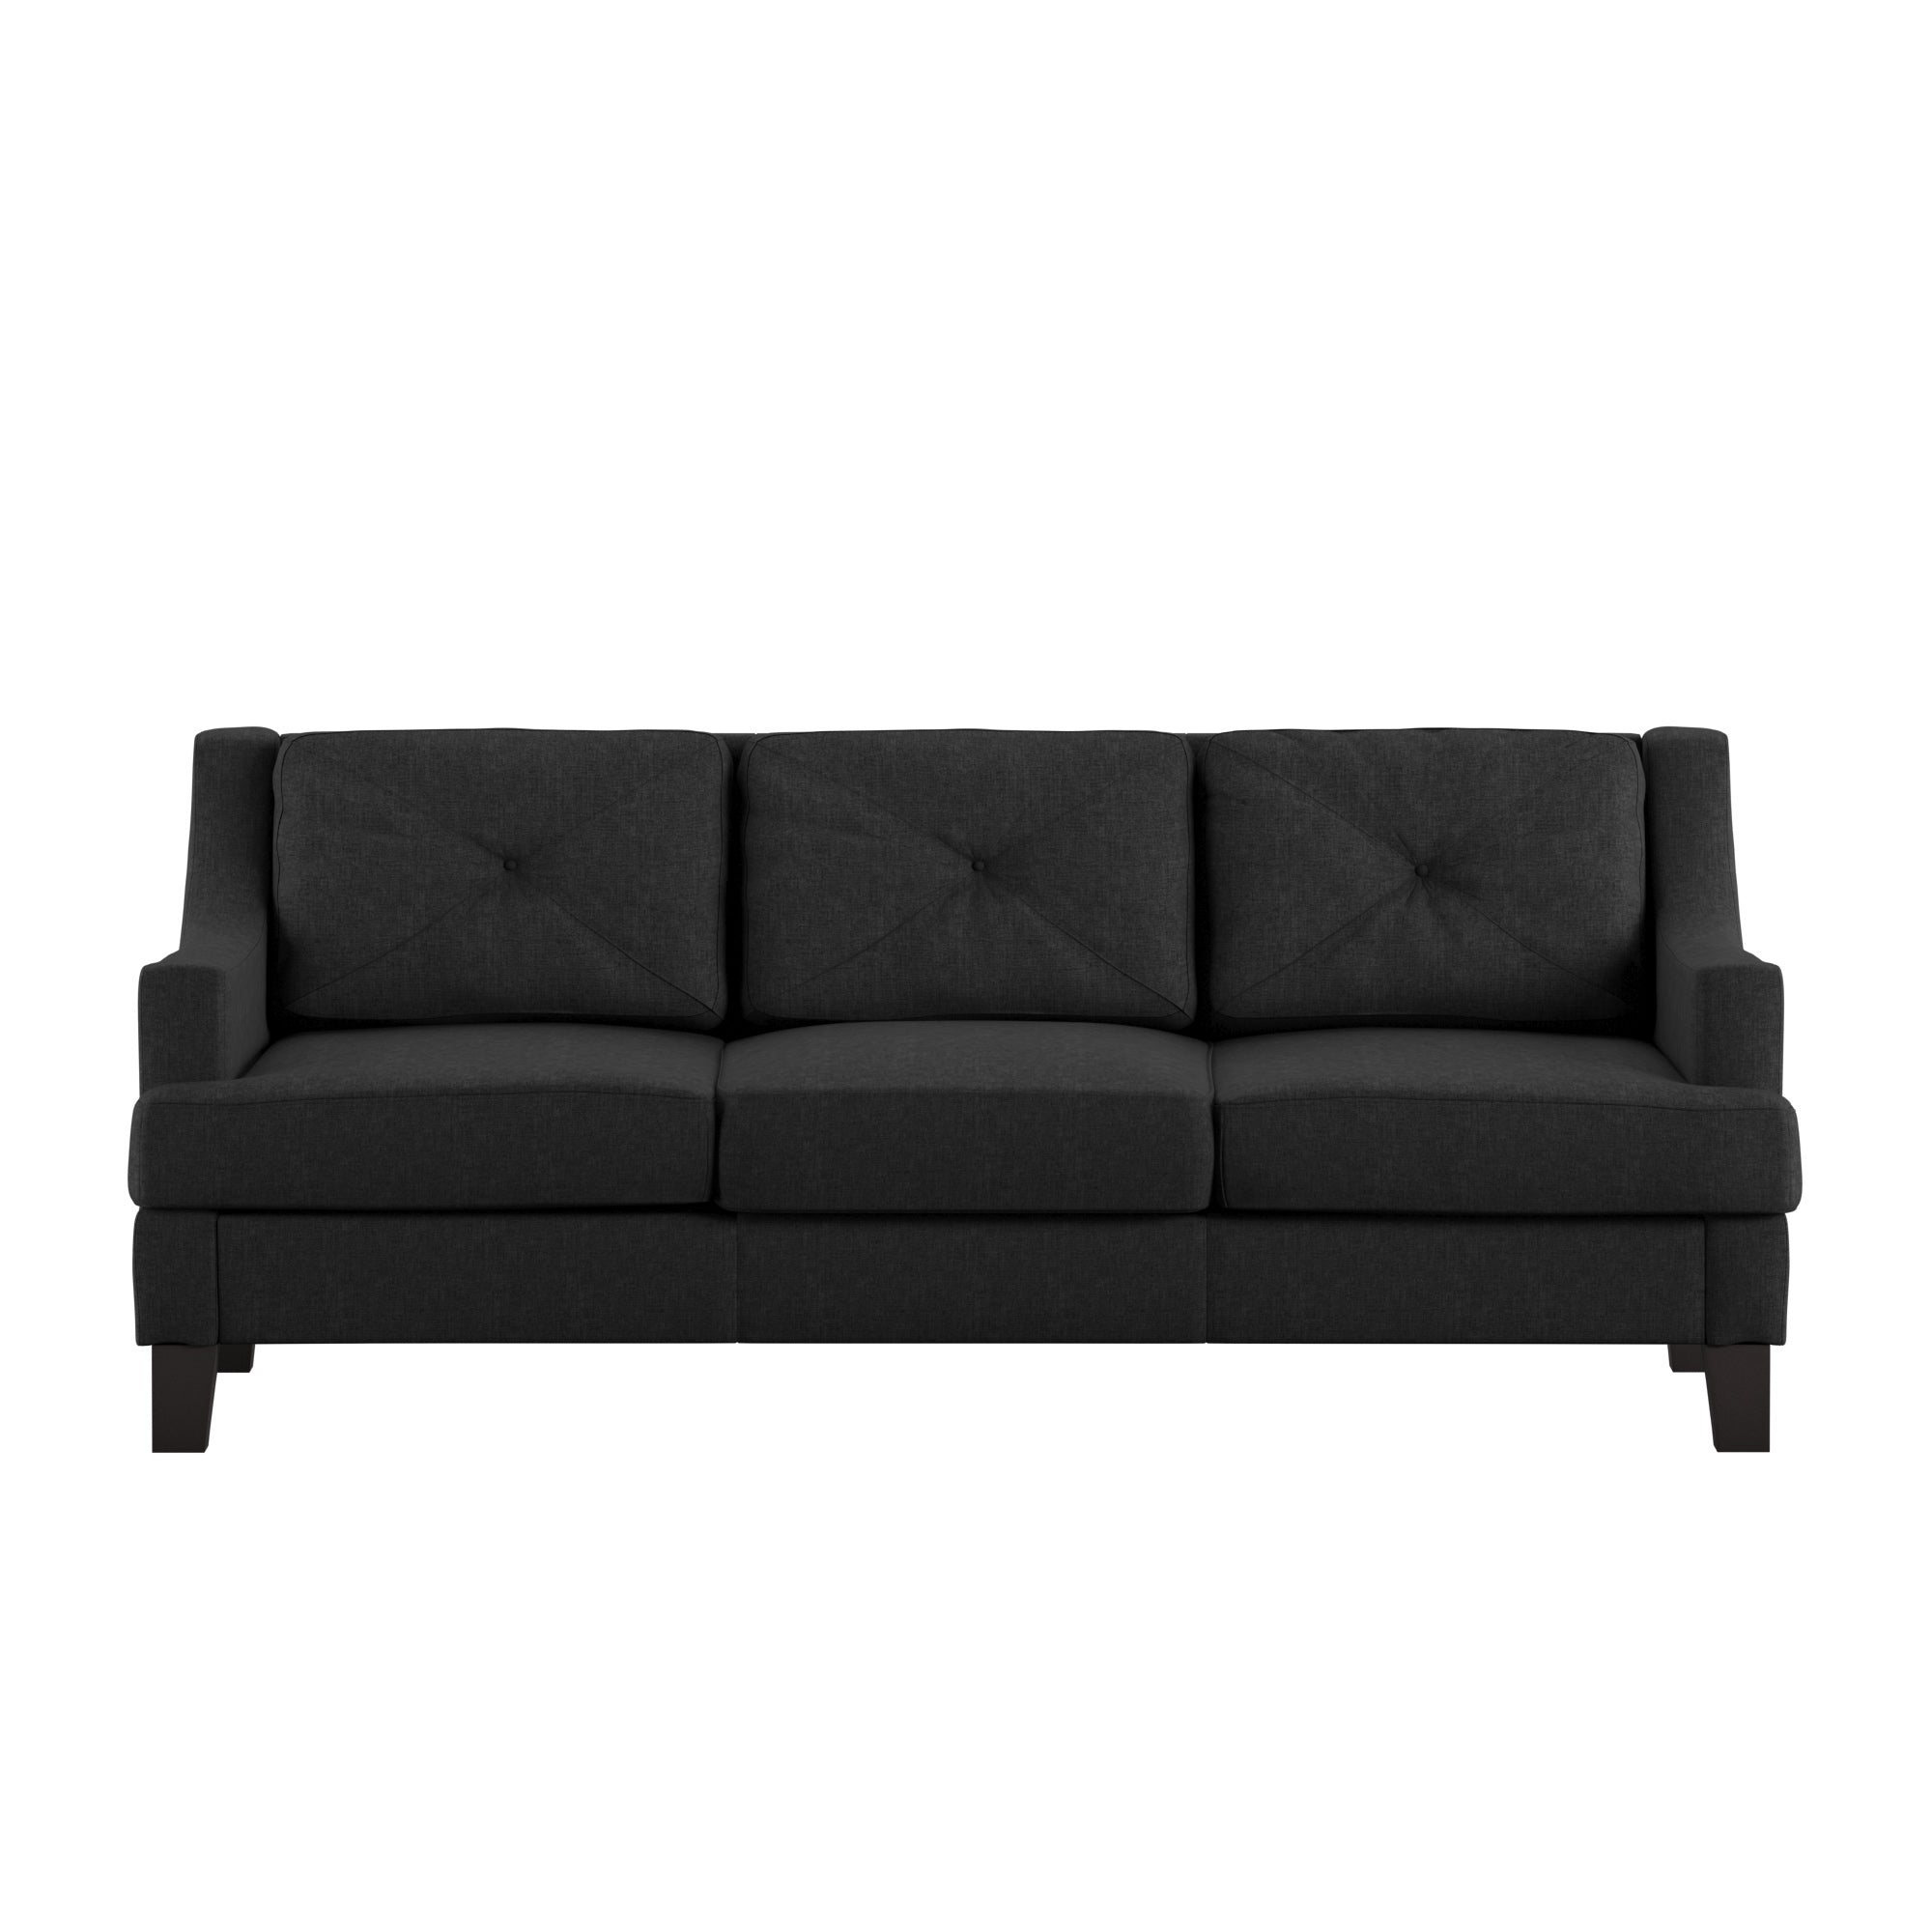 Linen Tufted Sloped Track Sofa